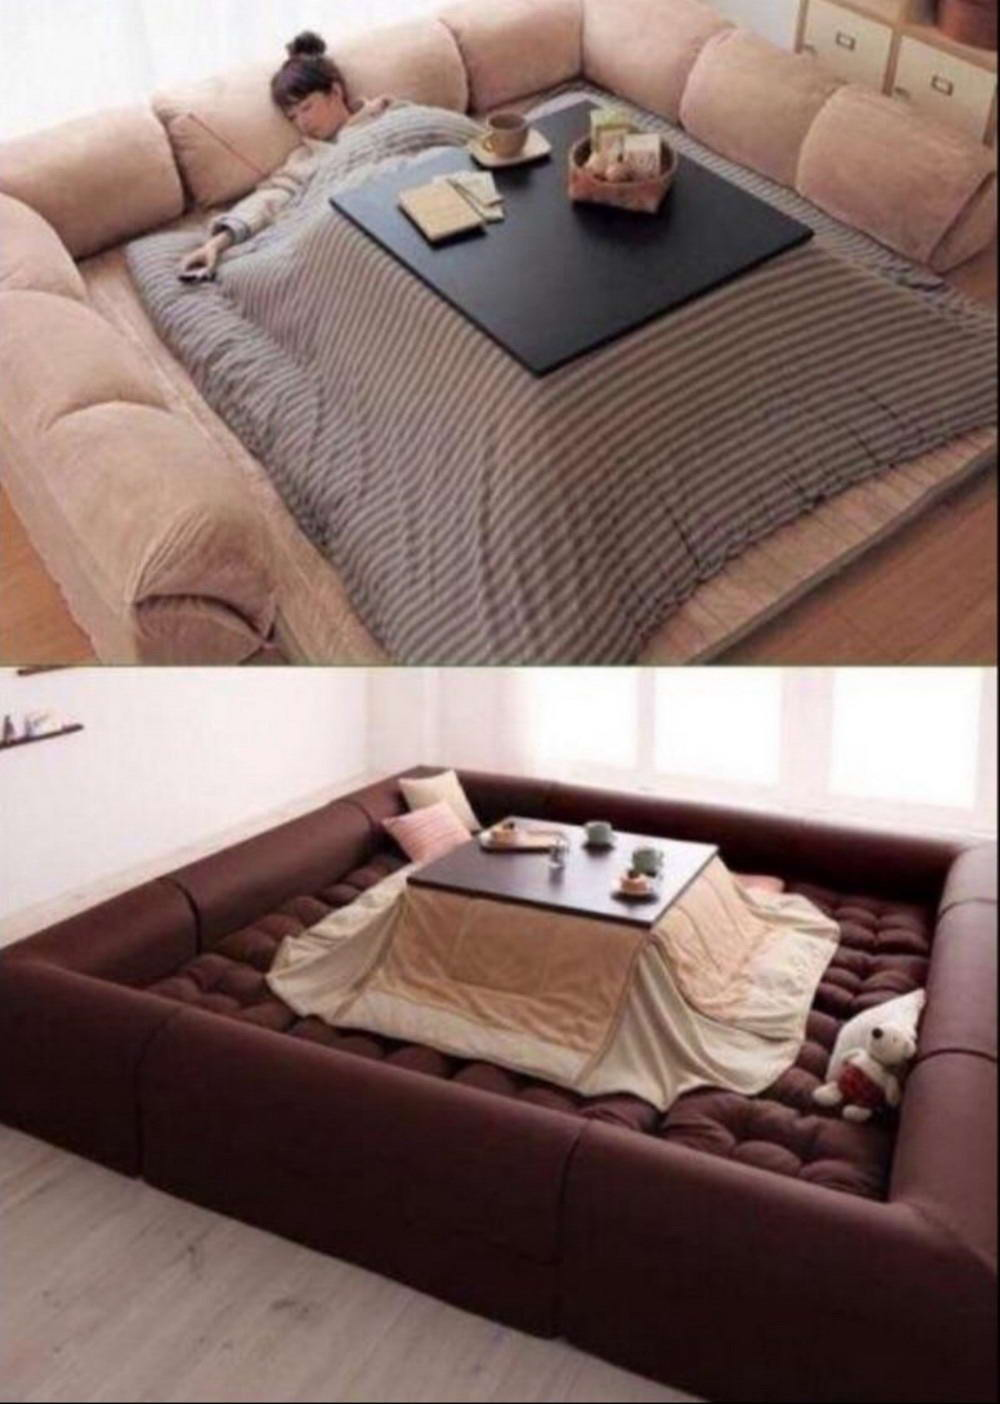 Cool Gizmos You Would Love To Have (41 Photos)